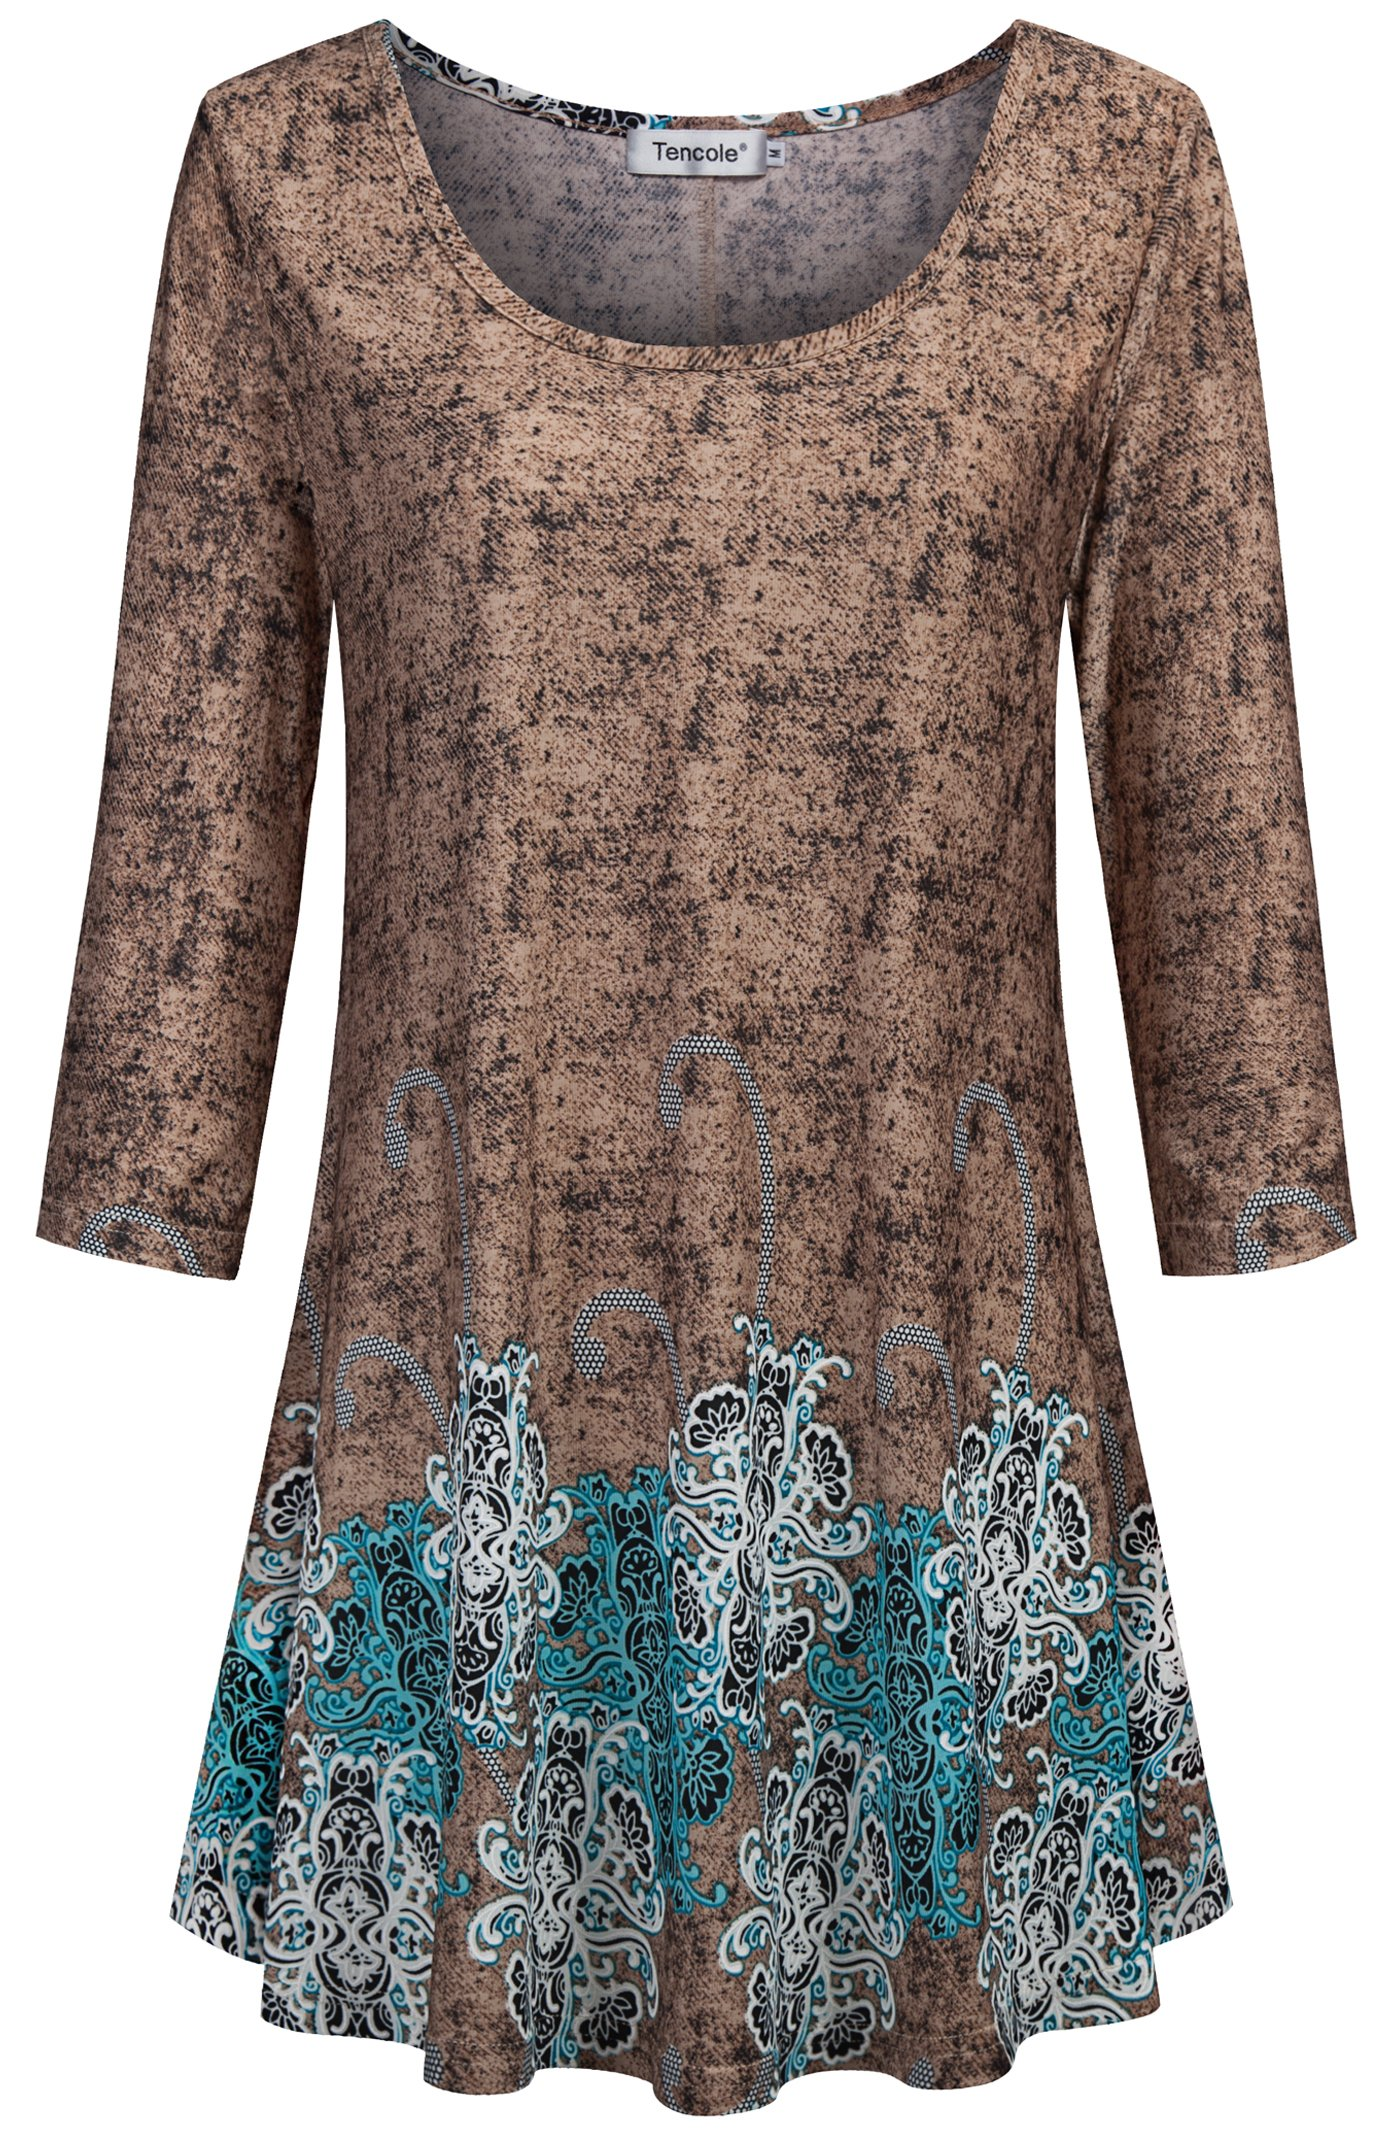 Tencole Swing Tops Women Flare Tops Skinny Pants Floral Print Blouses Slim Paisley Pattern Country Style Tunics Medium Large